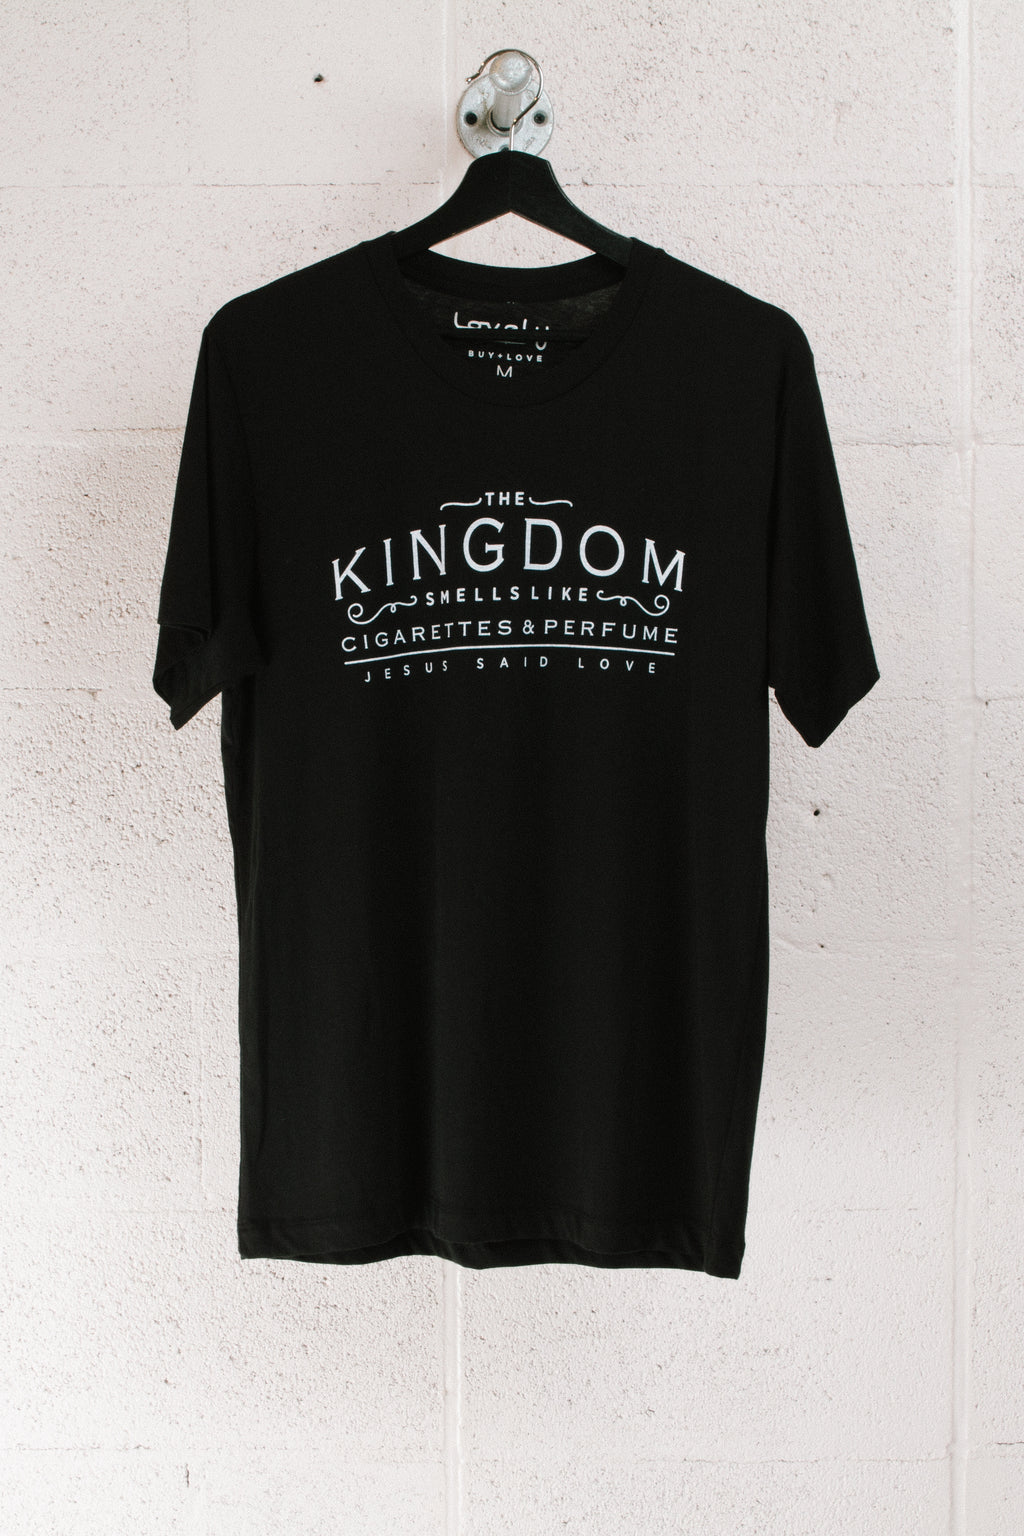 The Kingdom Smells Like Tee